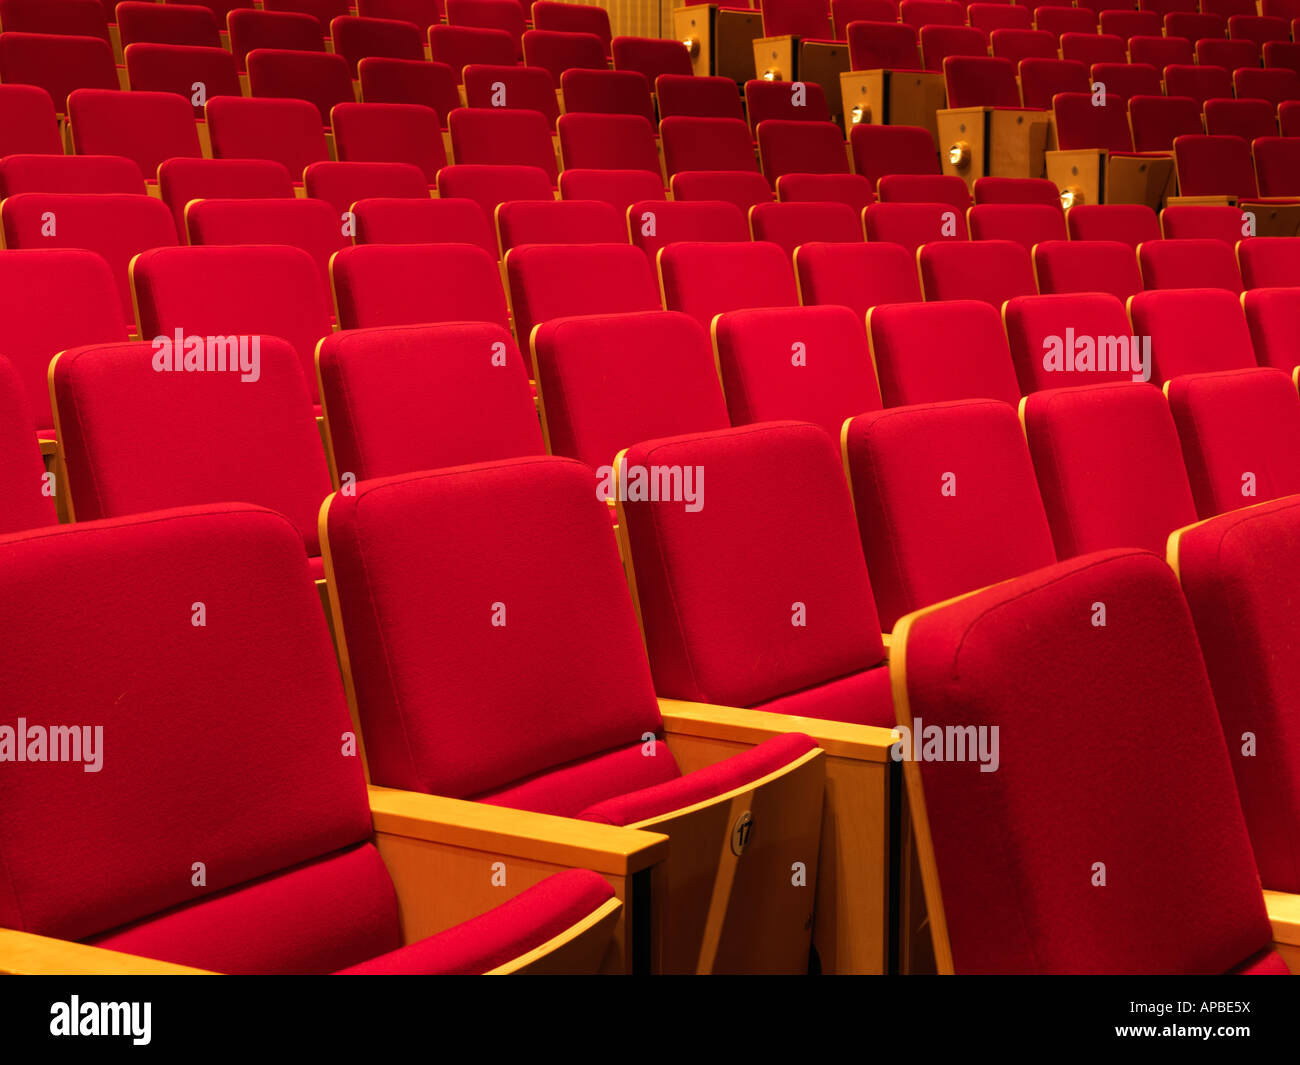 United Kingdom Manchester rows of empty red seats in an auditorium - Stock Image